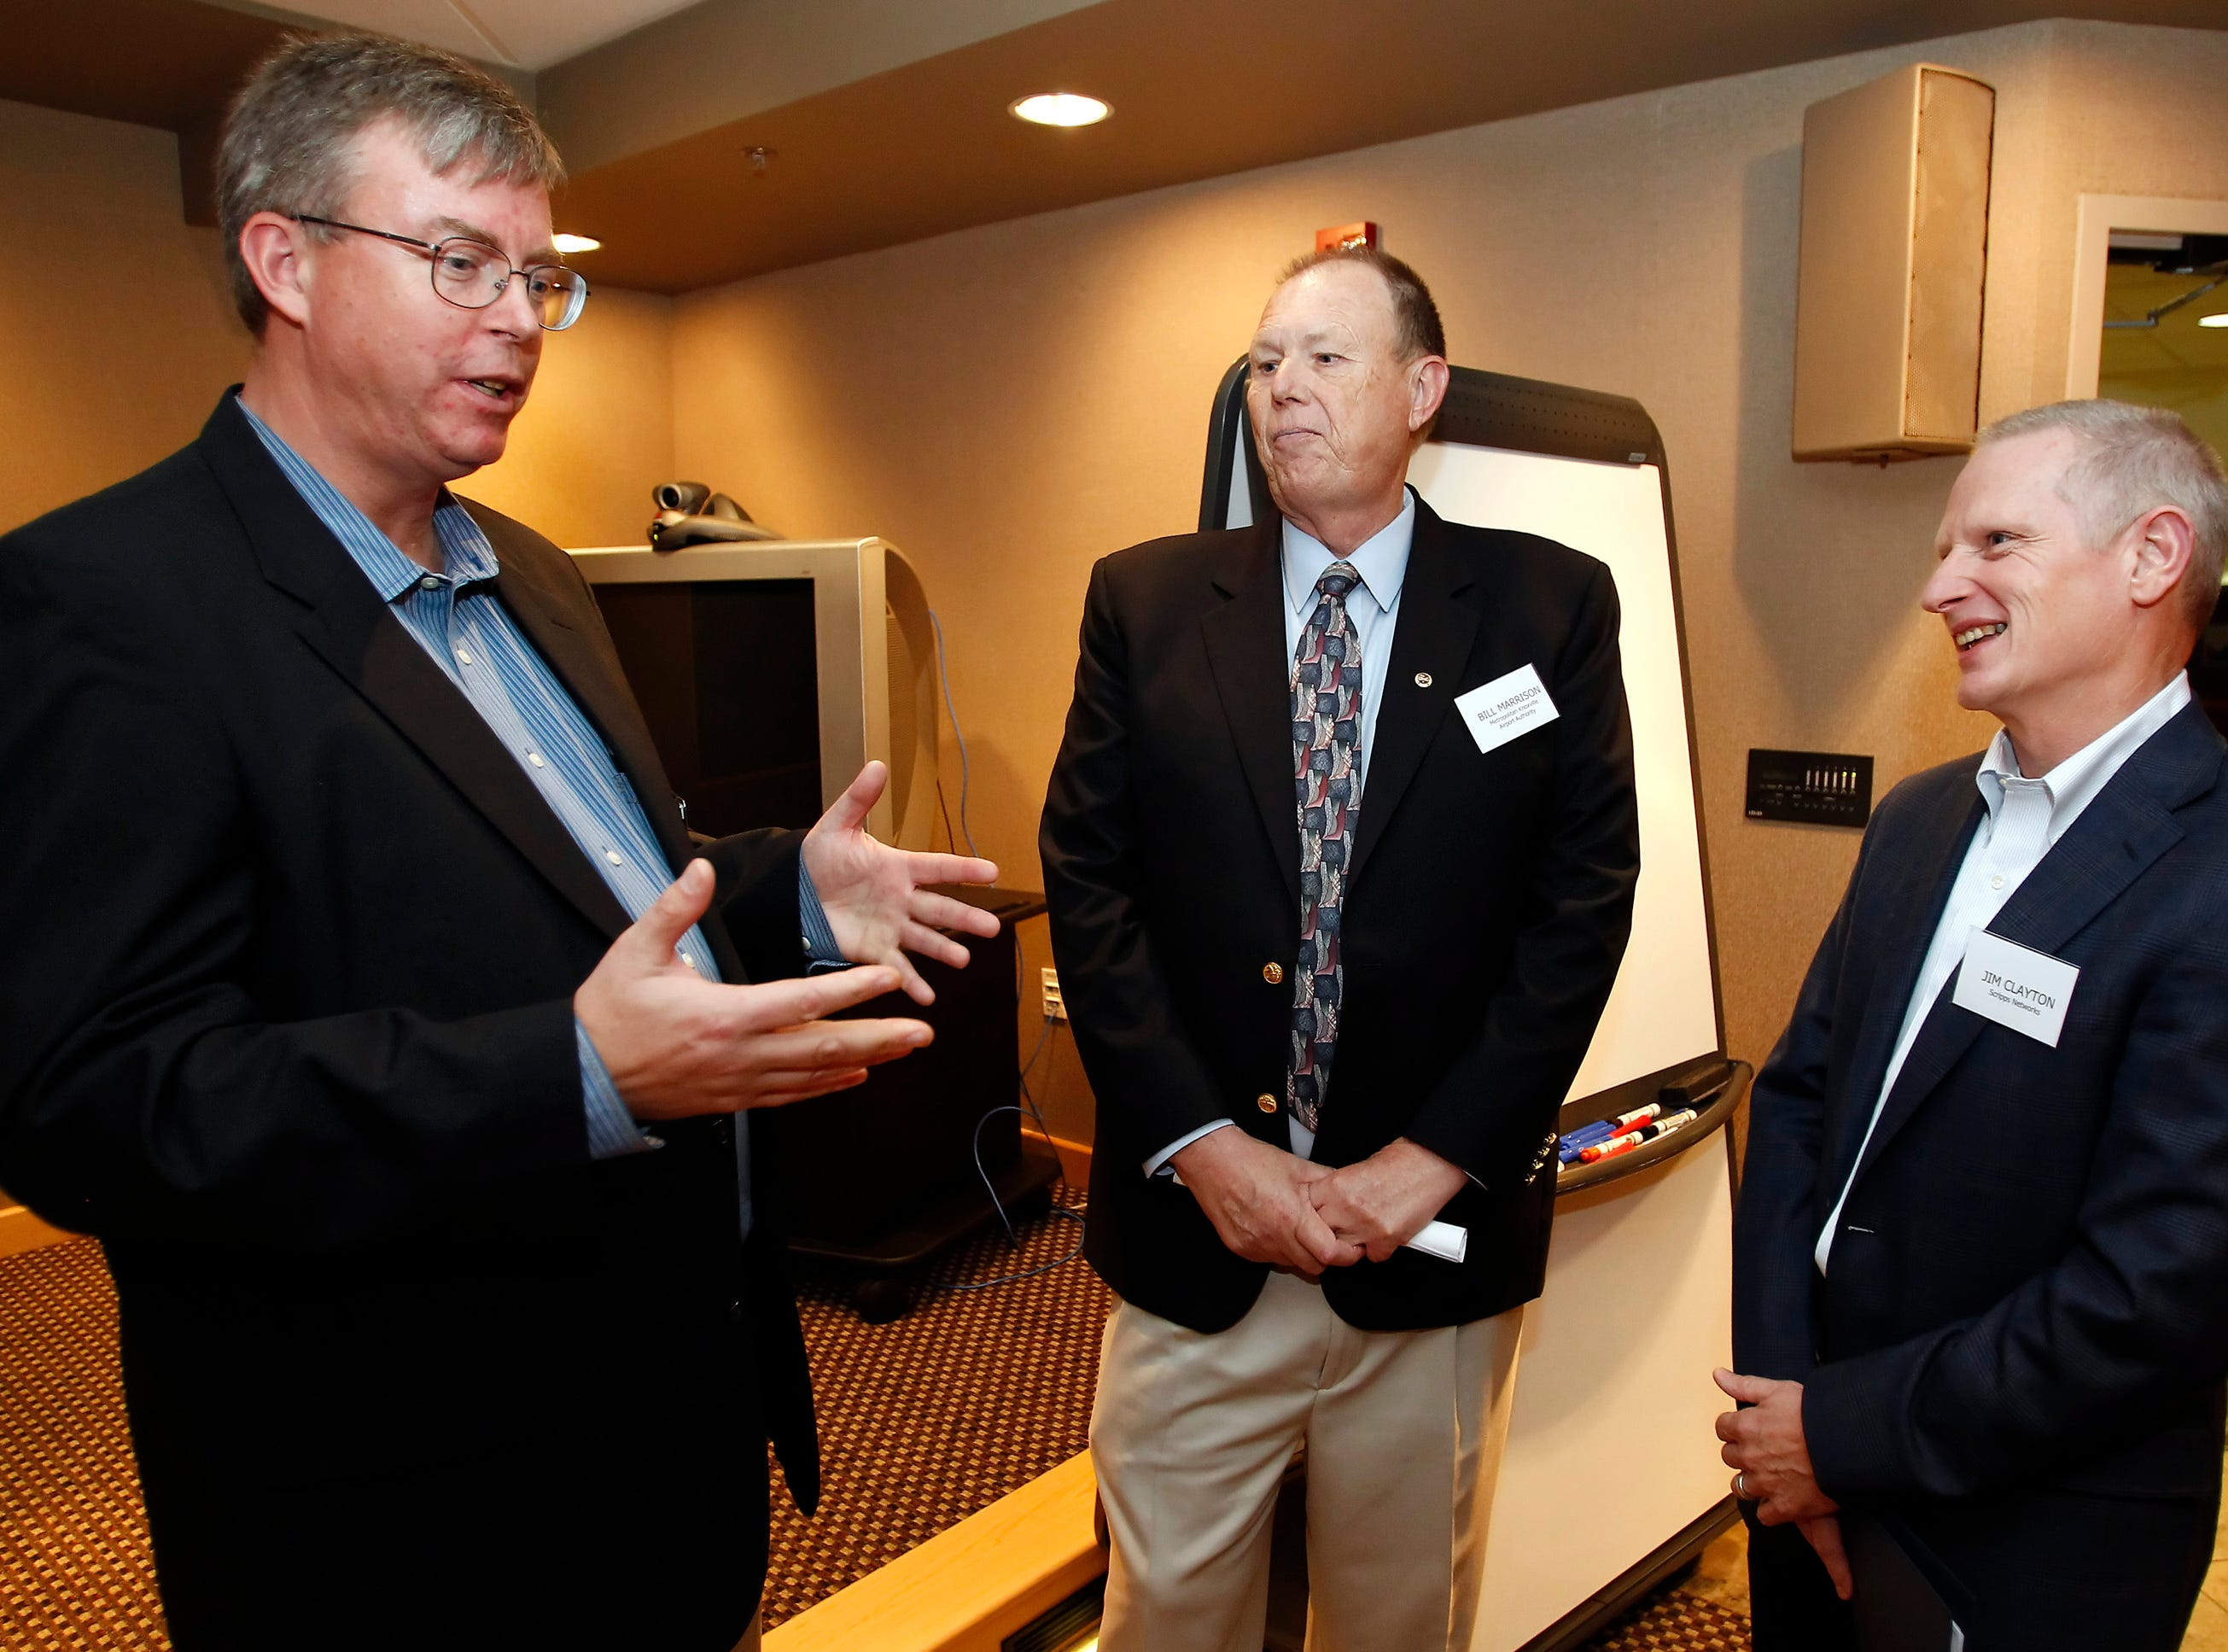 Bill Westgate, Frontier Airlines' Senior Director of Planning and Strategy, left, speaks with Bill Marrison, president of the Metropolitan Knoxville Airport Authority, center, and Jim Clayton, Executive Vice President, Planning and Strategy, Lifestyle Media Division, Scripps Networks Interactive speak before a meeting at Scripps Networks Friday, Nov. 9, 2011.